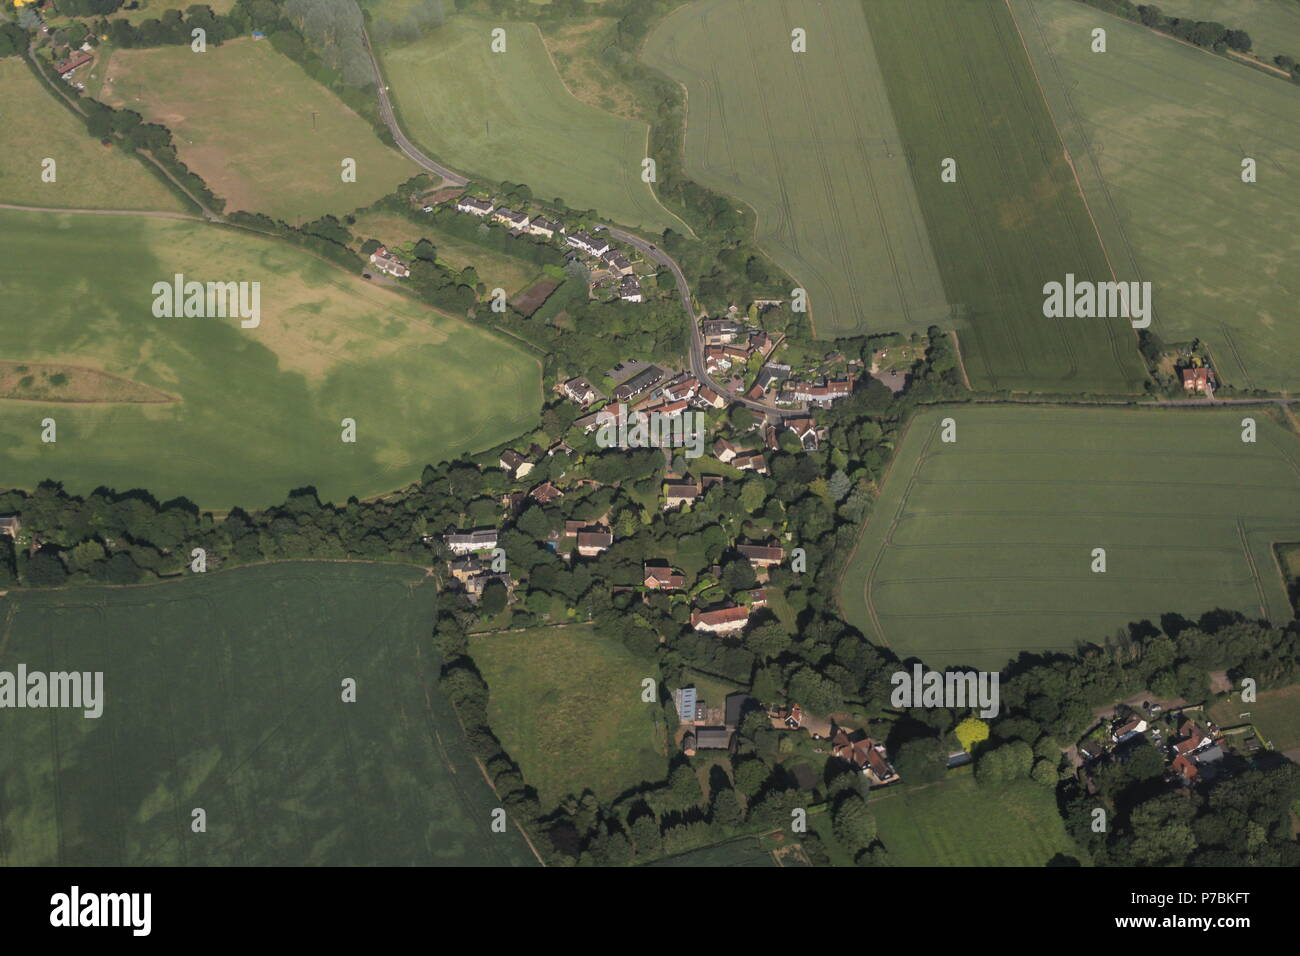 Aerial Photography - high-angle shot of farmland and fields over Britain.Summer 2018. - Stock Image